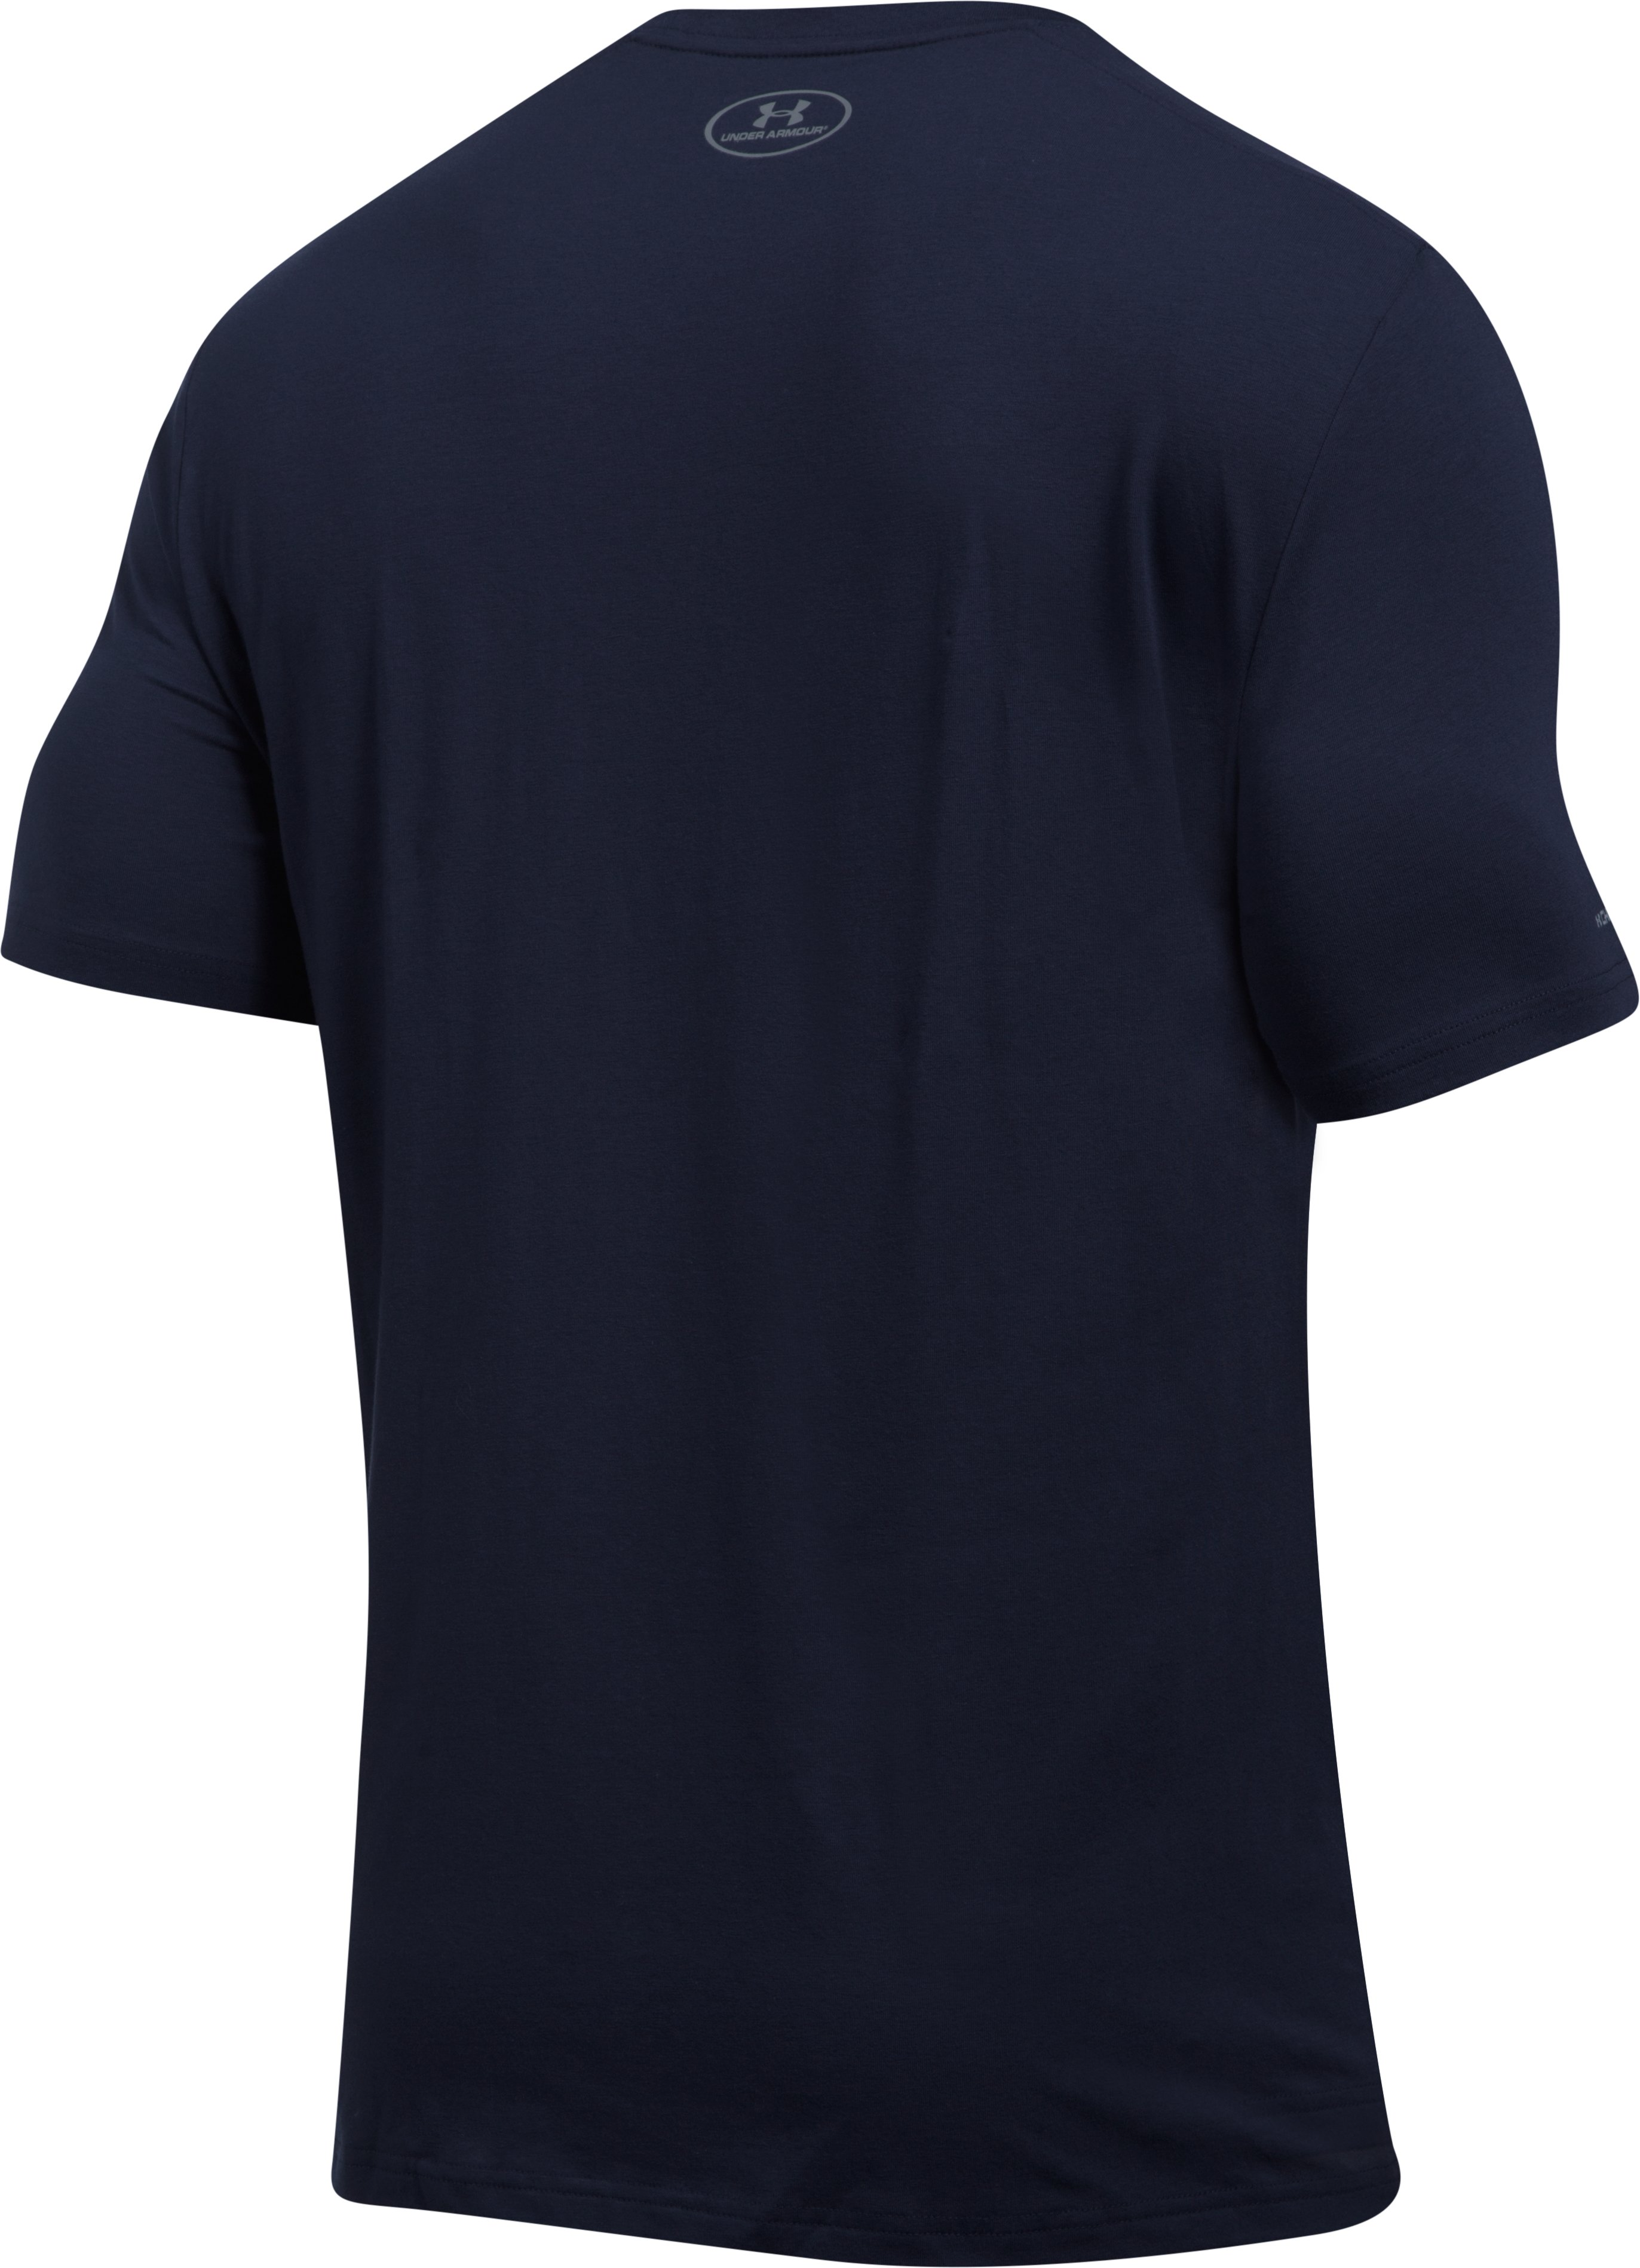 Men's New York Yankee Lockup T-Shirt, Midnight Navy, undefined